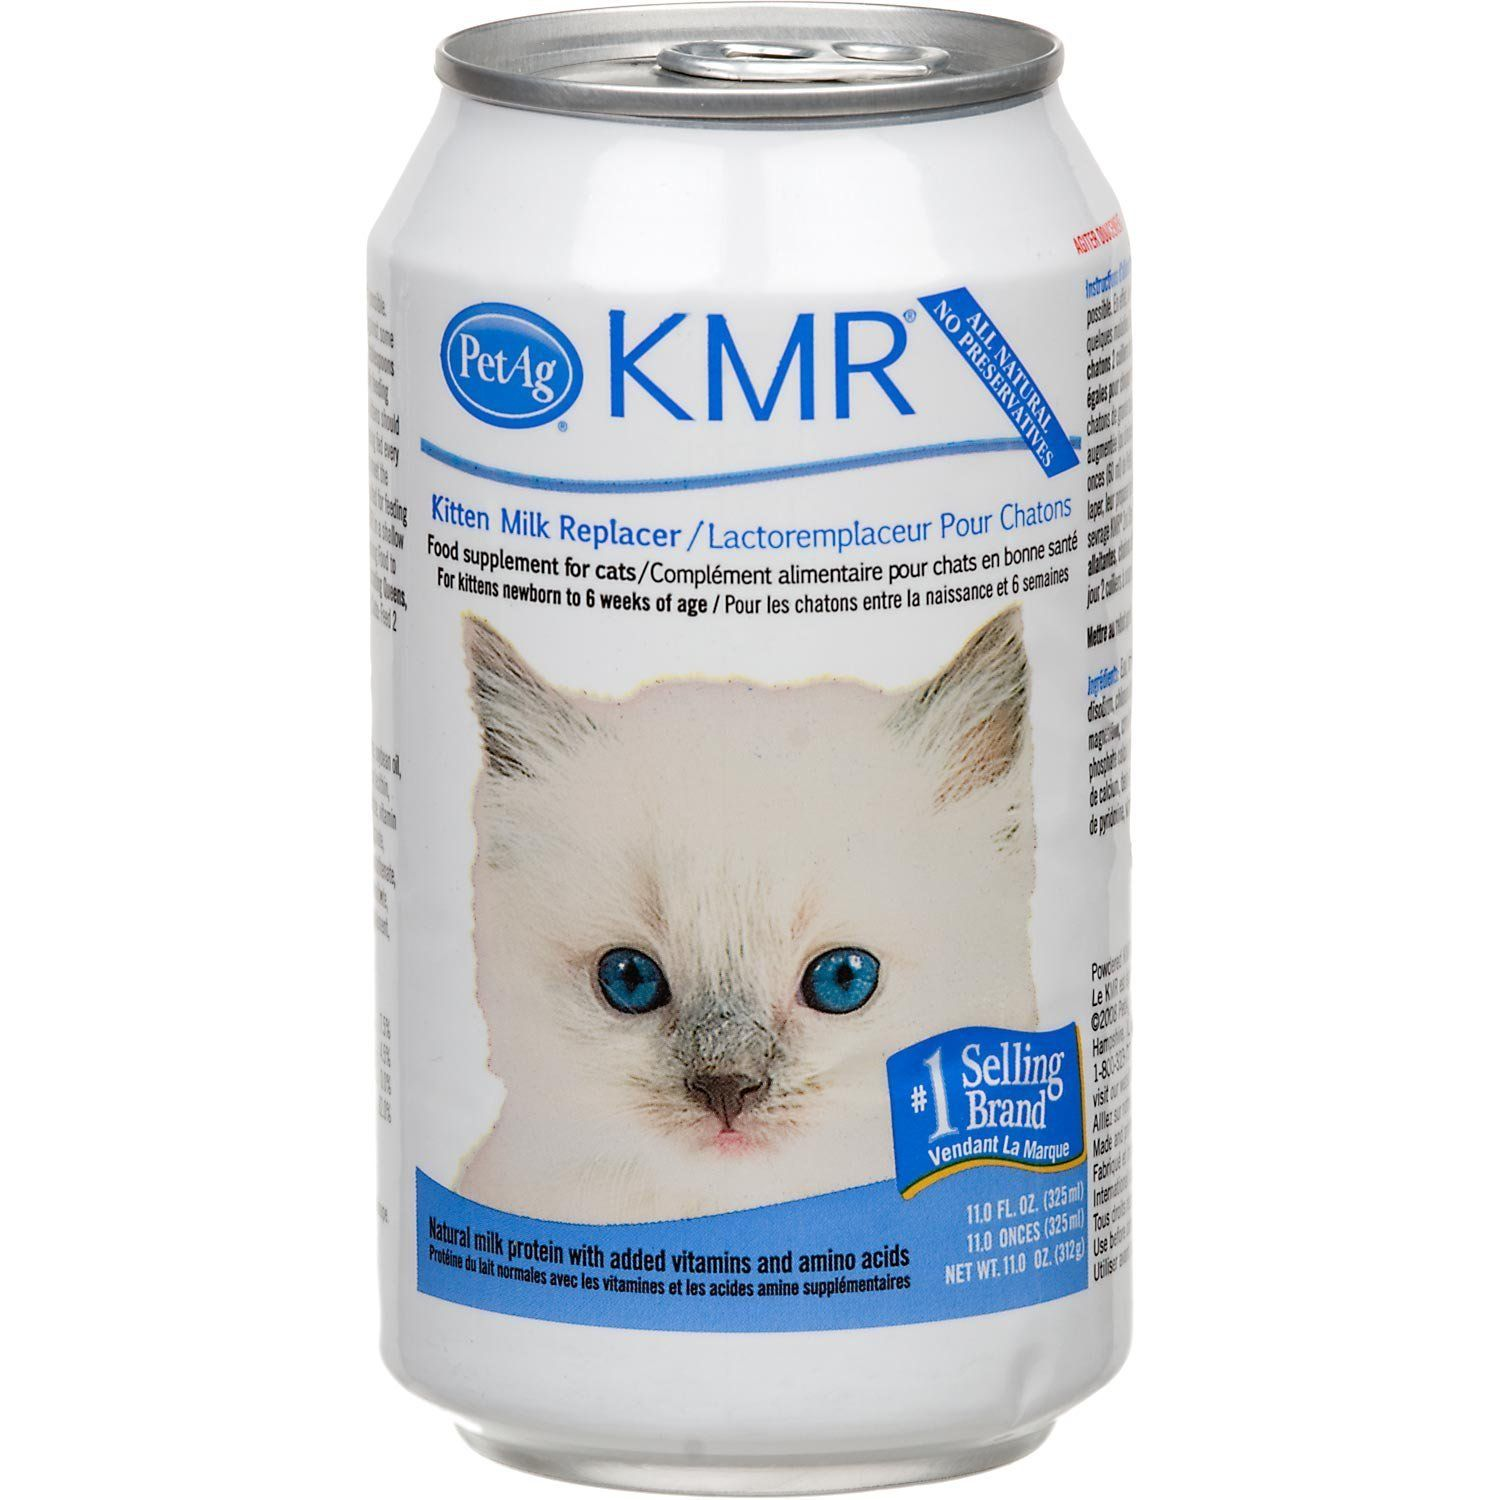 Pet Ag Kmr Milk Replacer Food Supplement For Kittens And Small Animals Liquid Details Can Be Found By Clicking On The Image This Kittens Pet Supplies Pets